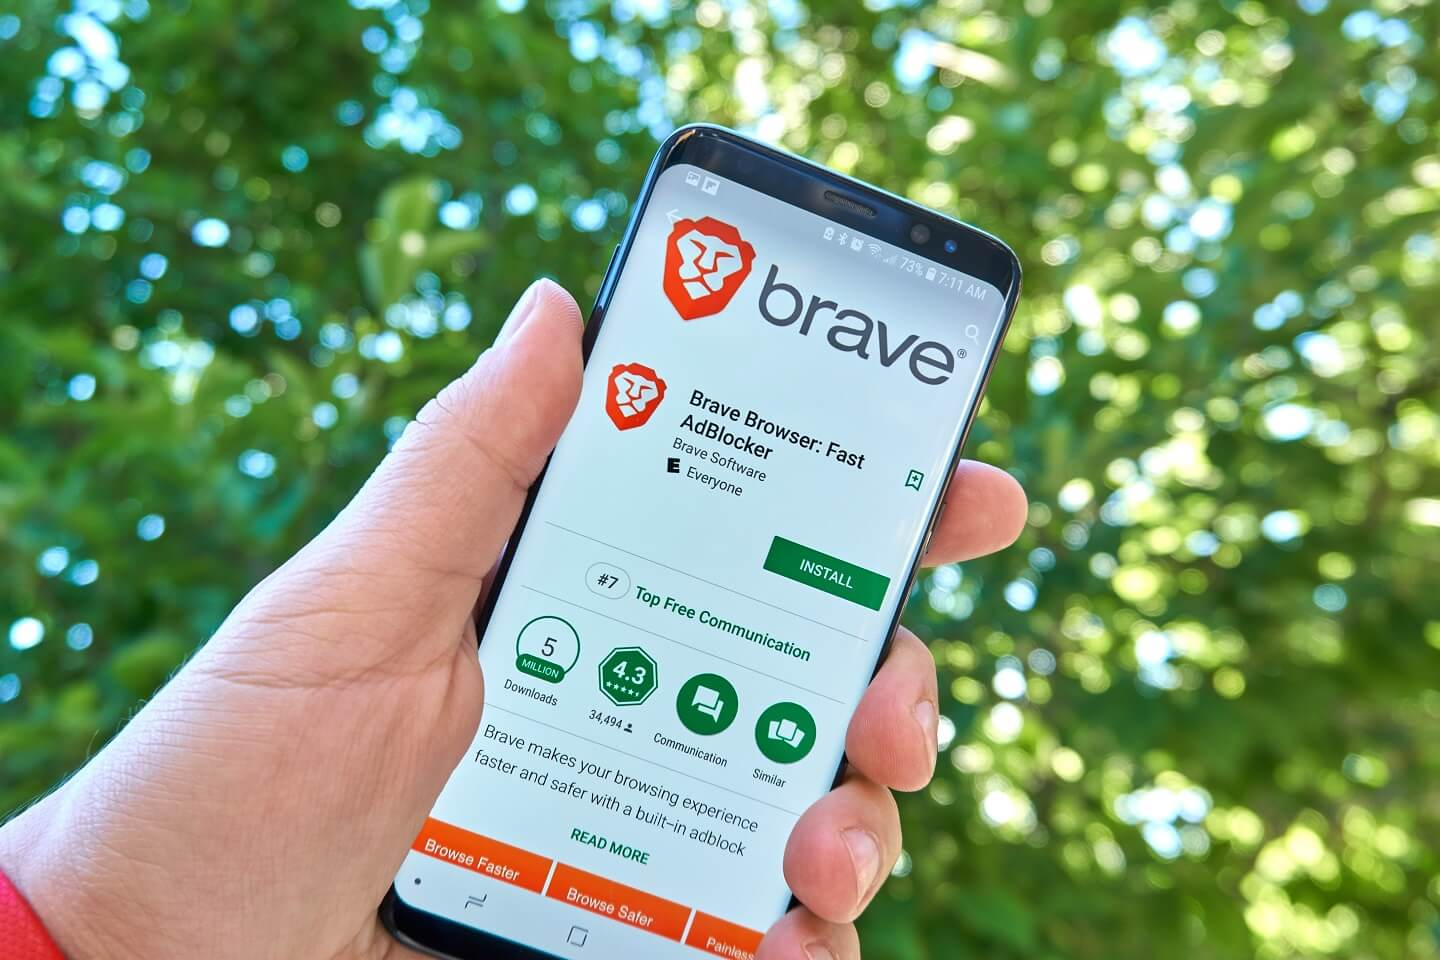 A hand holding a mobile device with the Brave browser app open and on the screen.